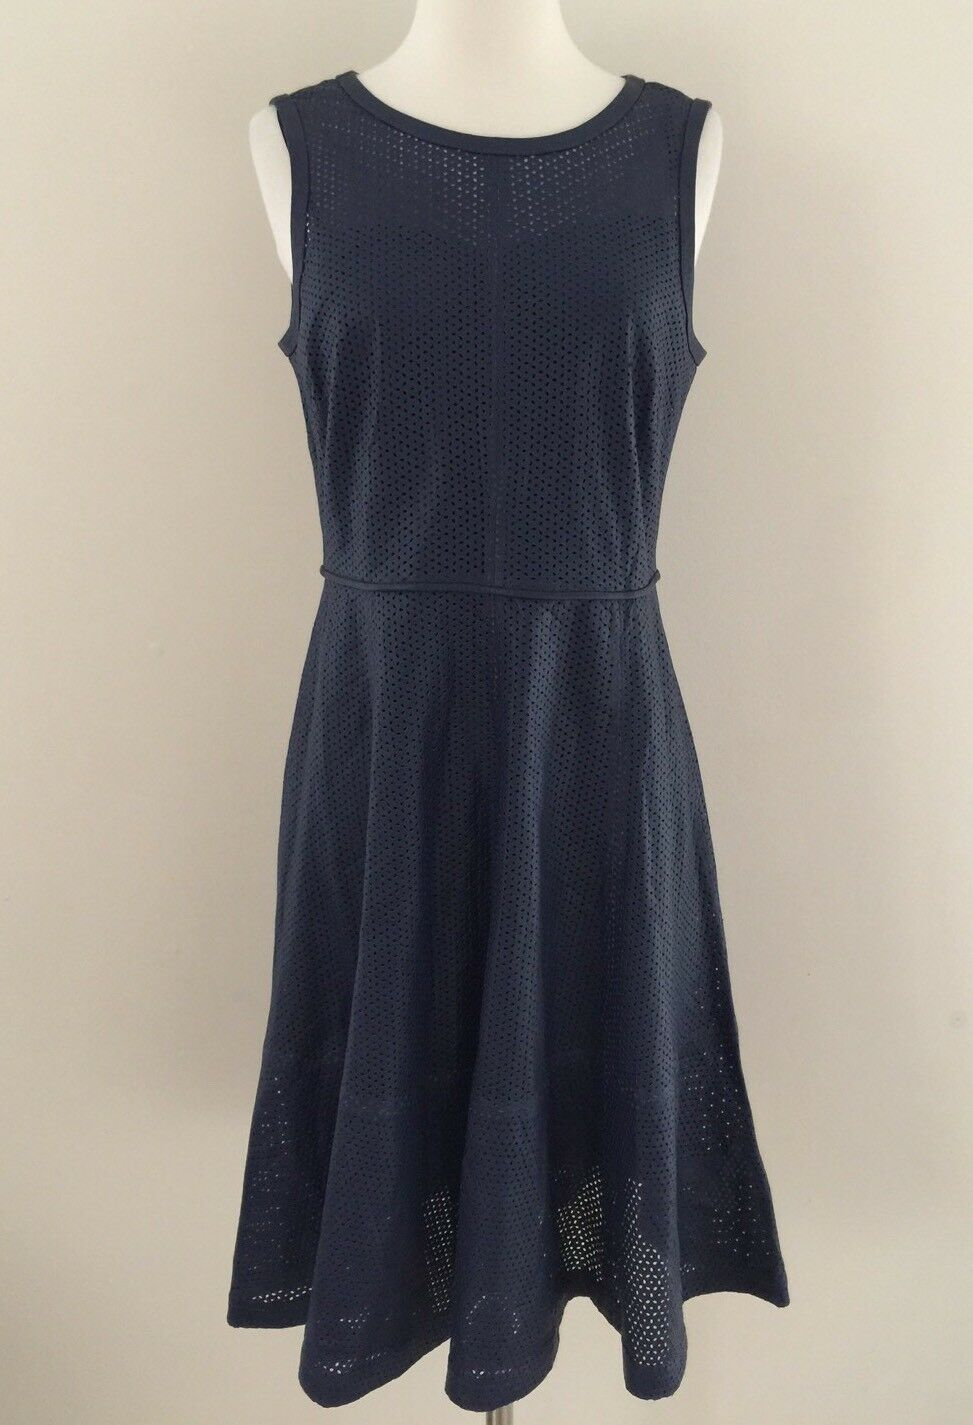 NEW JCREW COLLECTION PERFORATED GENUINE LEATHER DRESS NAVY F0251 Size 8 RARE